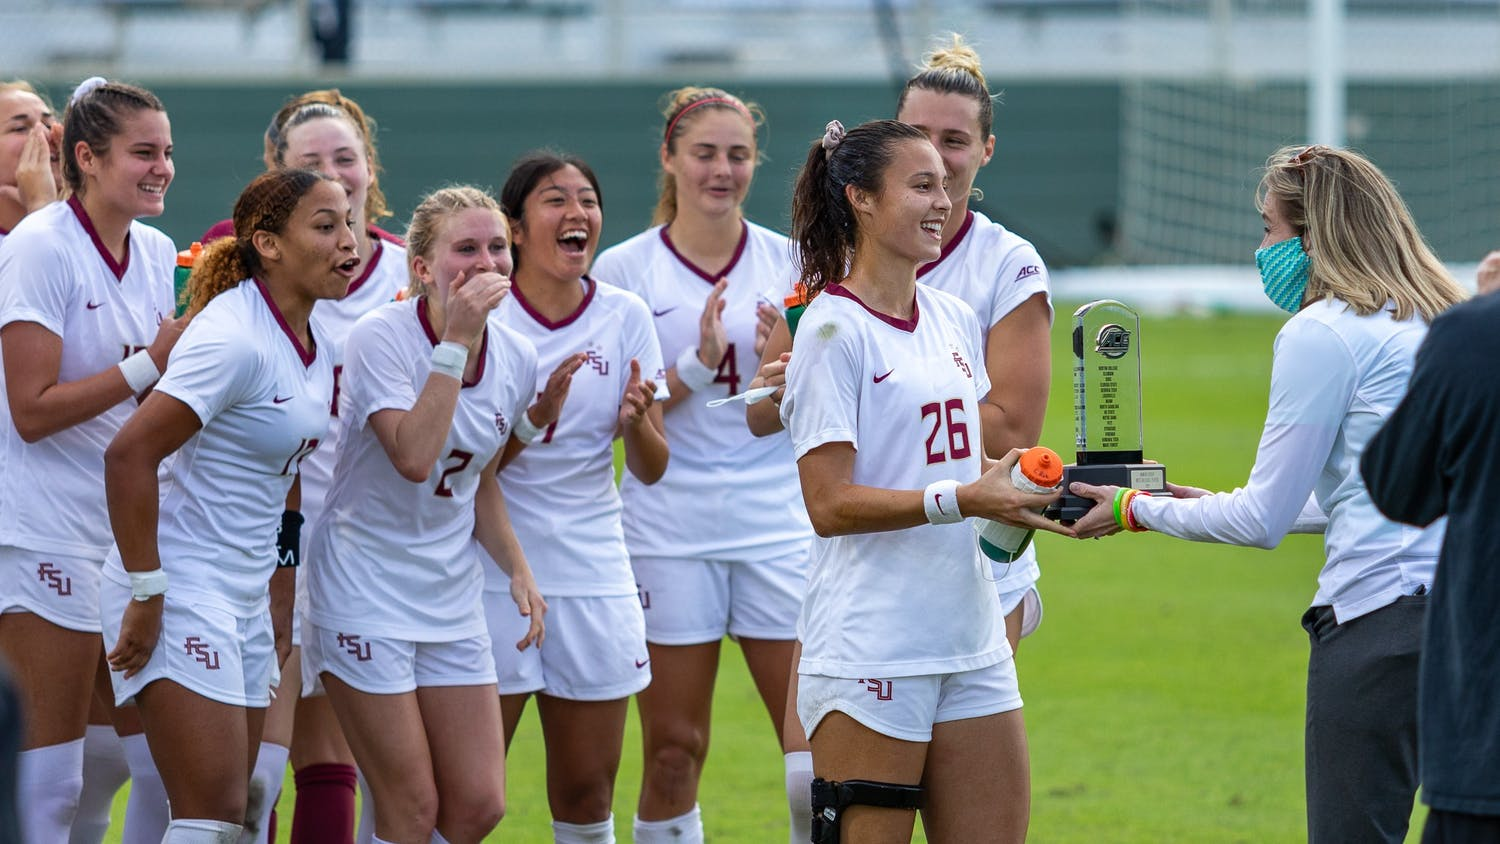 FSU redshirt senior defender Clara Robbins (26) receives the MVP trophy in Sahlen's Stadium in Cary, NC on Nov. 15, 2020. The Seminoles beat the Tar Heels 3-2 to win the ACC championship.